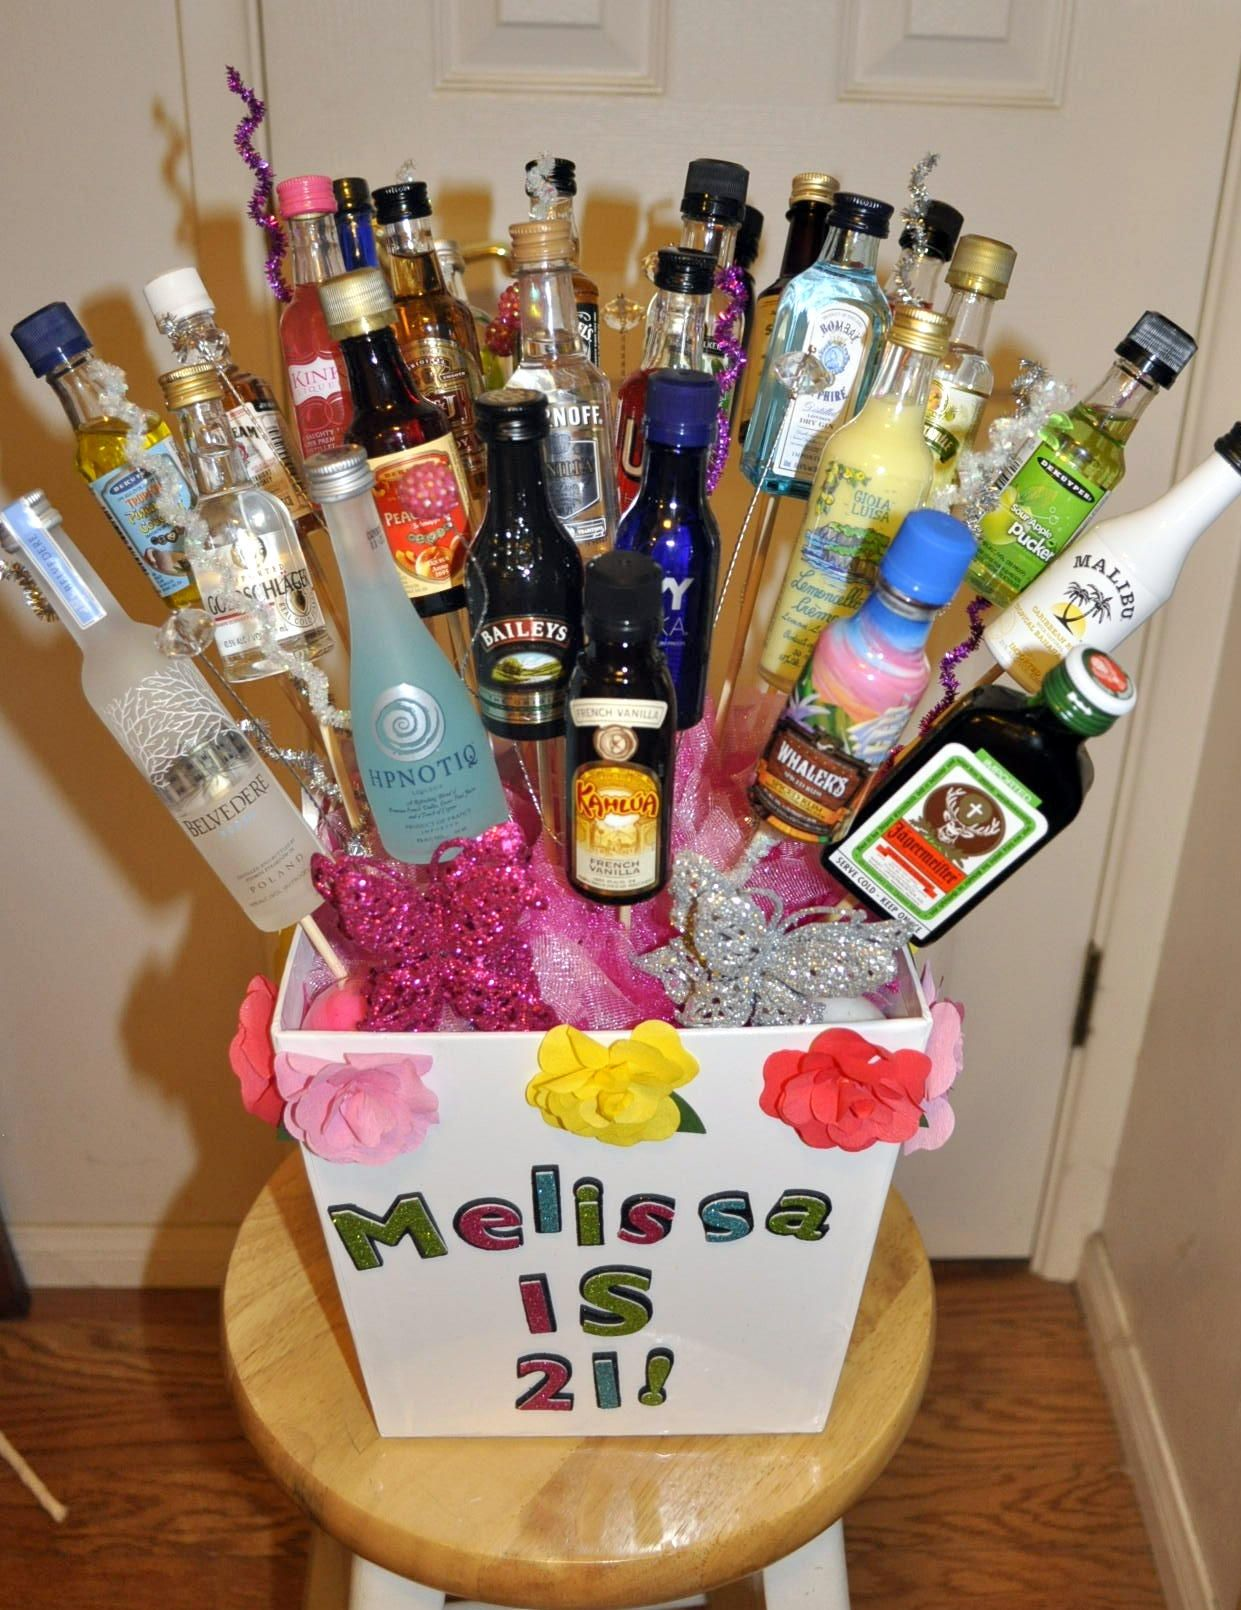 21st Birthday Gift Fun To Do And Easy To Make 21st Birthday Gifts 21st Birthday Presents 21st Birthday Basket